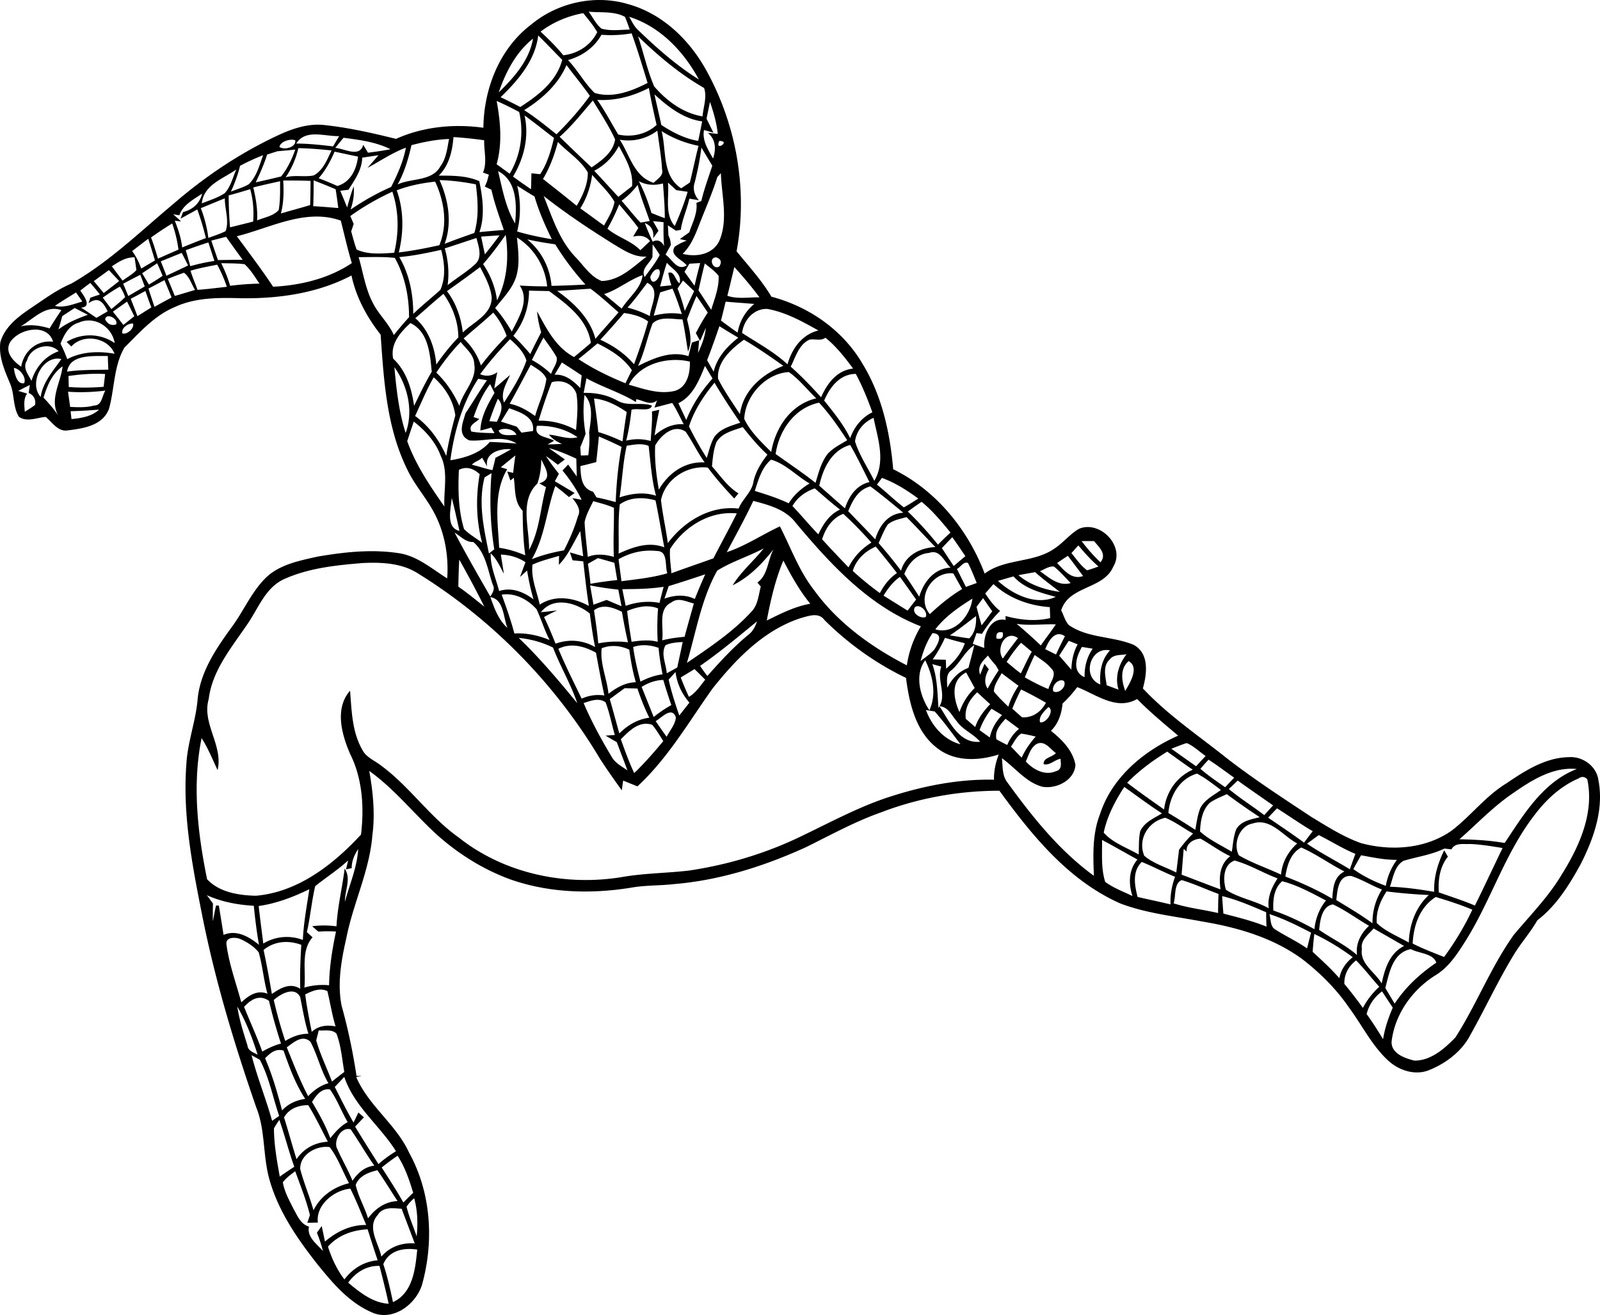 spiderman coloring pages kids printable - Printable Color Pages For Kids